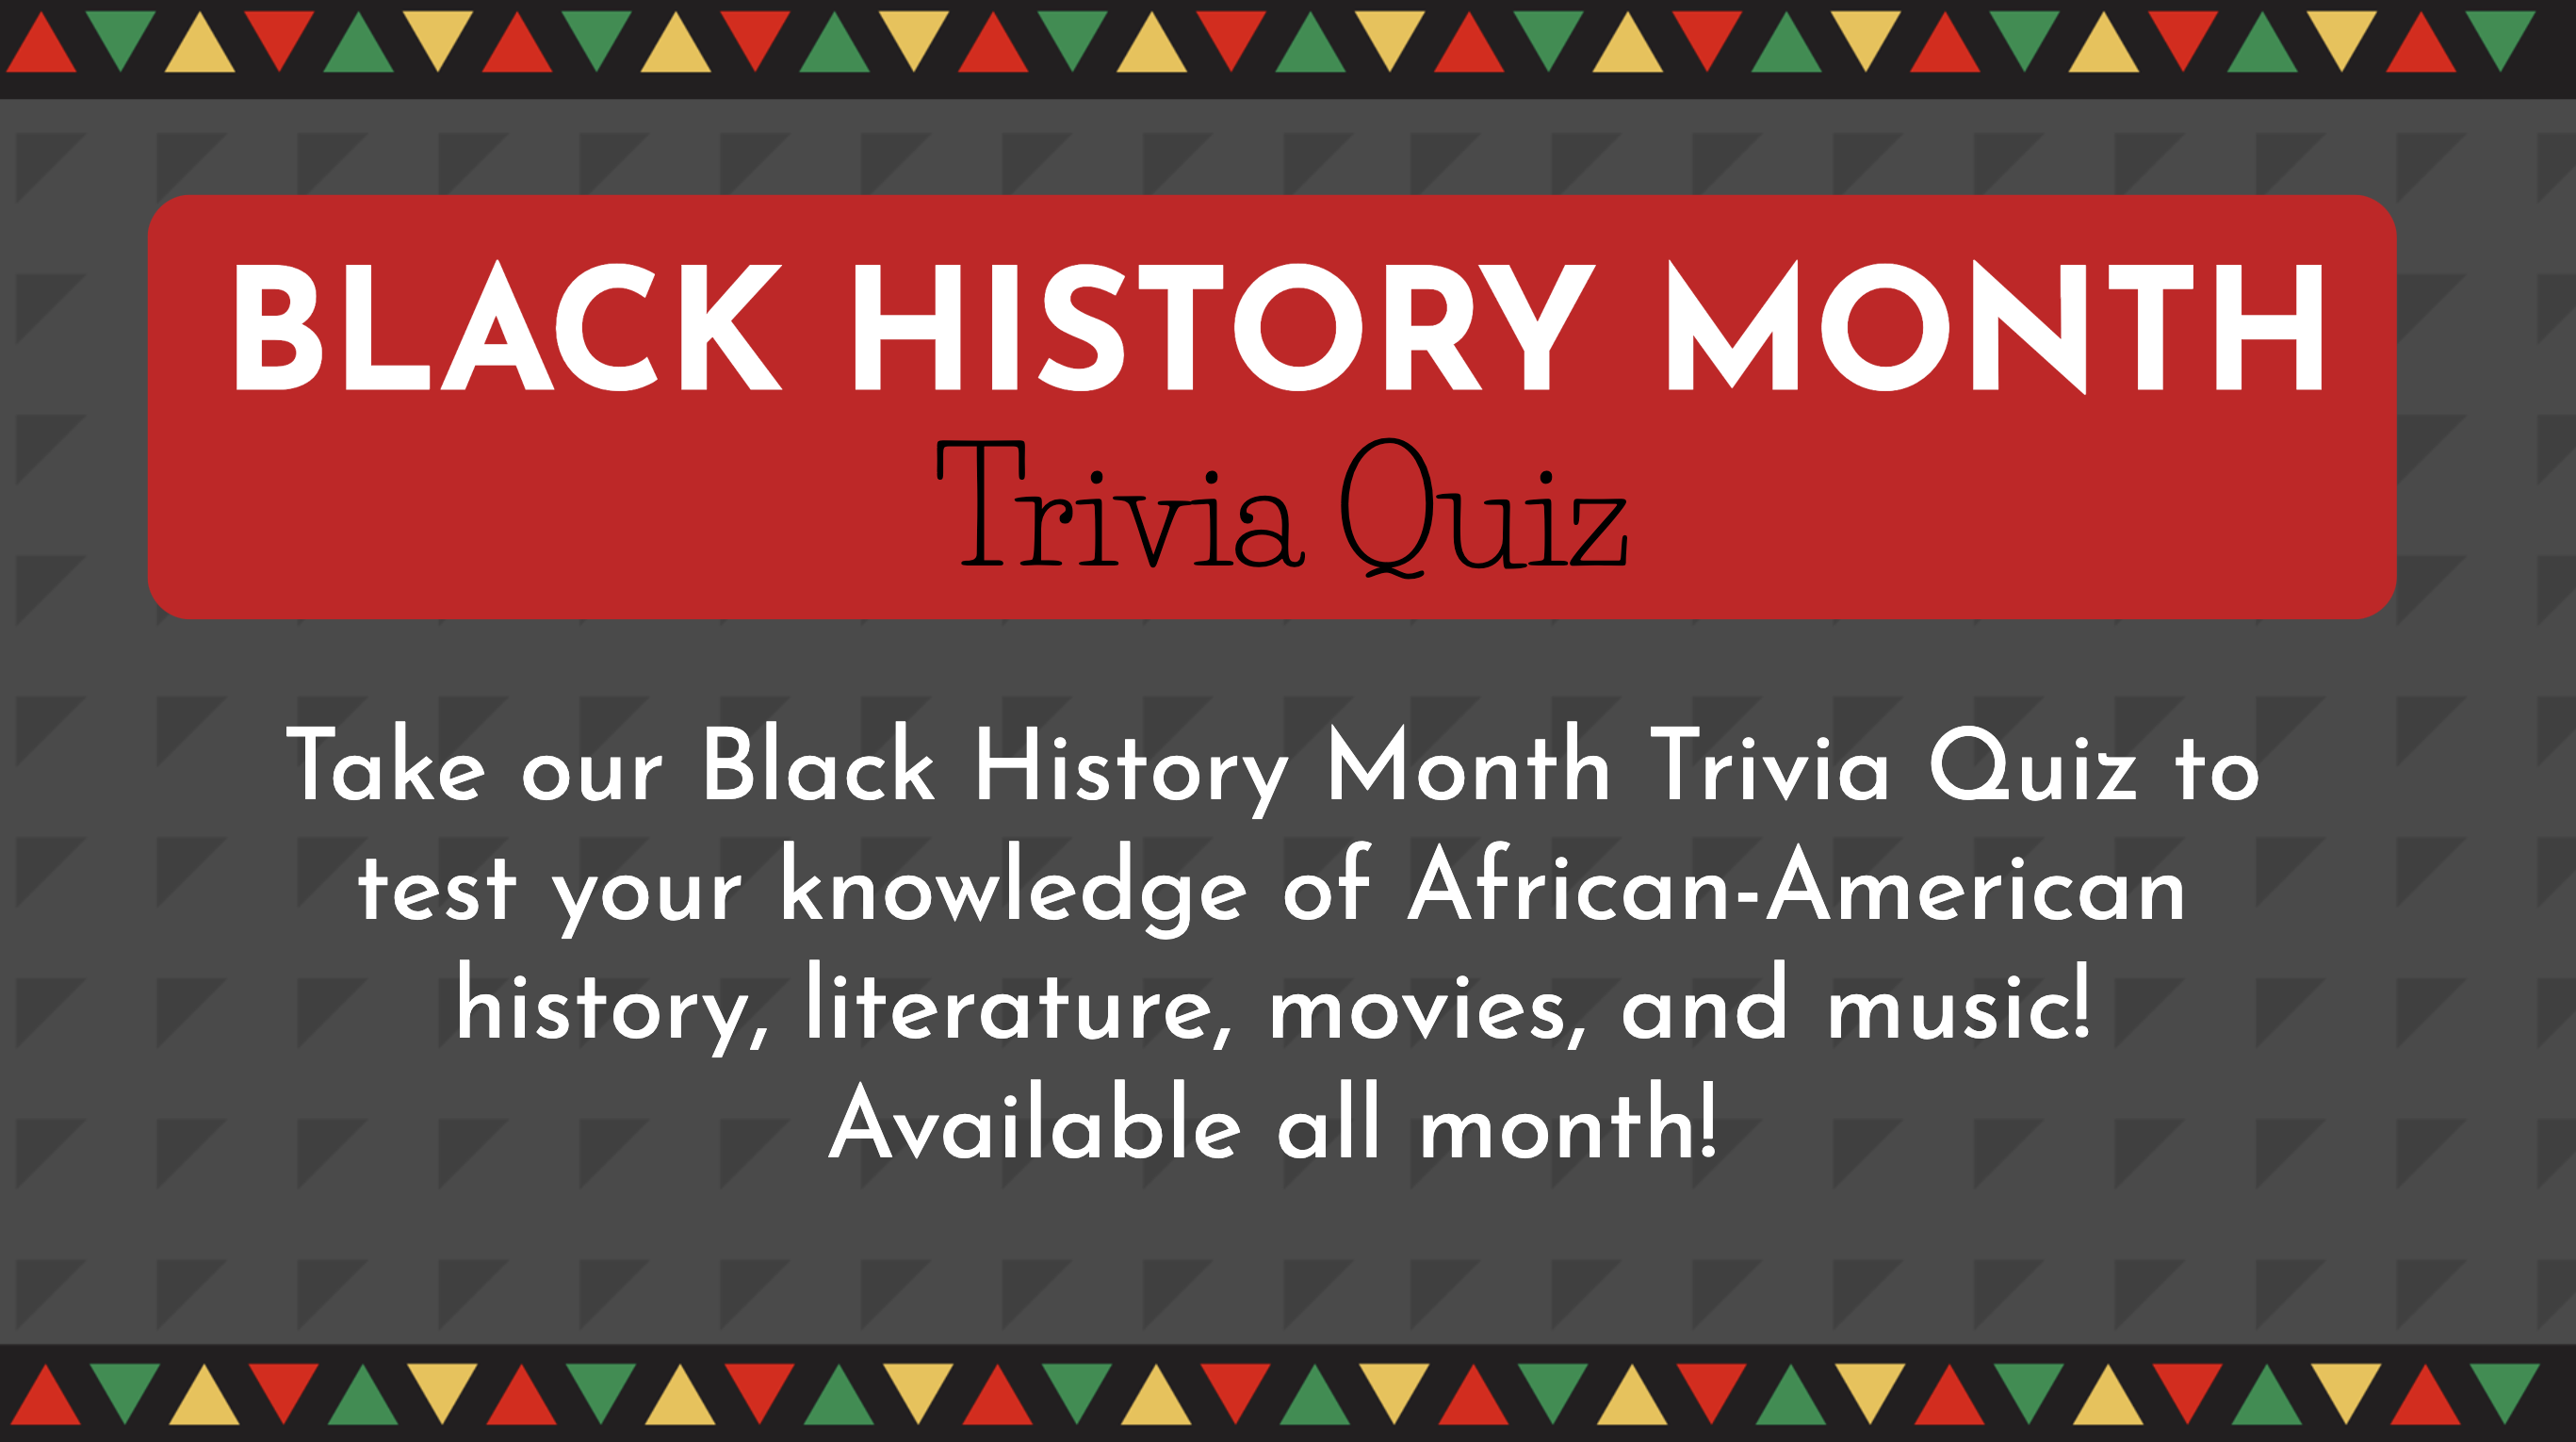 Black History Month Trivia Quiz